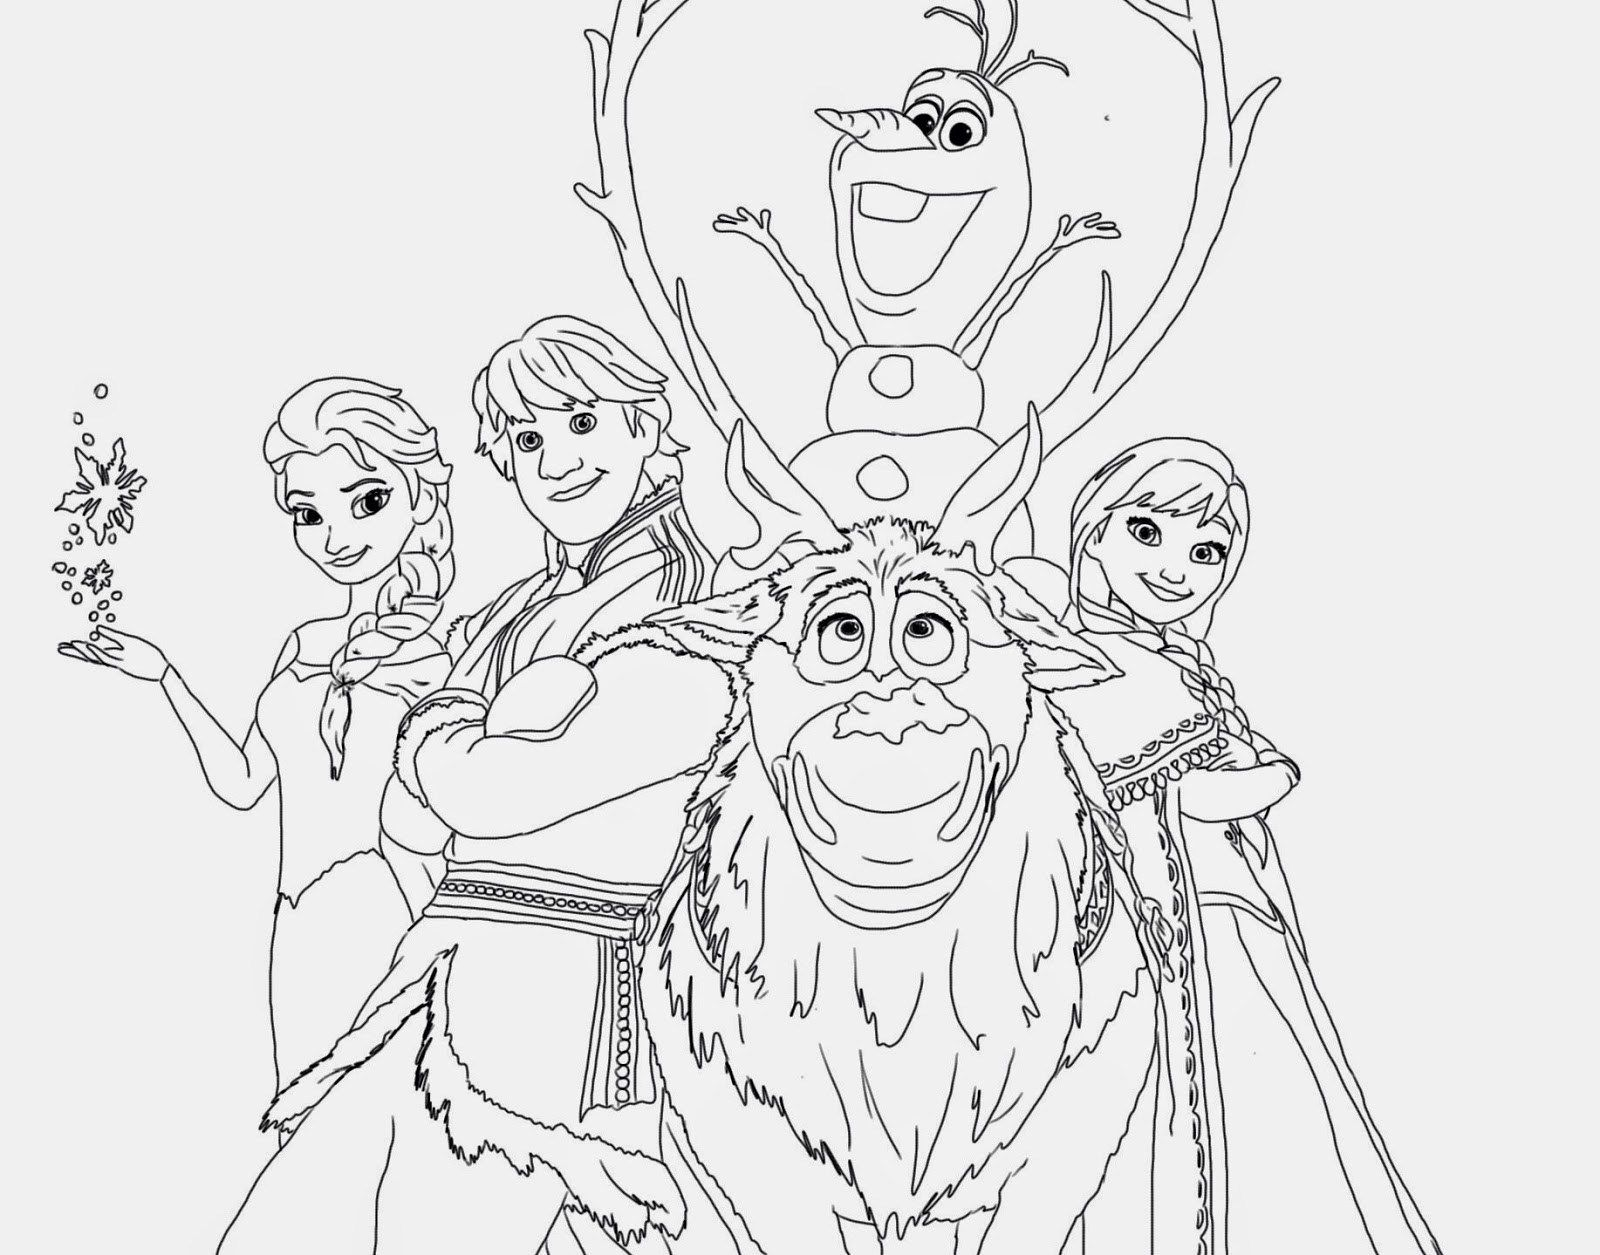 24 Excellent Picture Of Frozen Coloring Pages Free Davemelillo Com Elsa Coloring Pages Frozen Coloring Pages Princess Coloring Pages